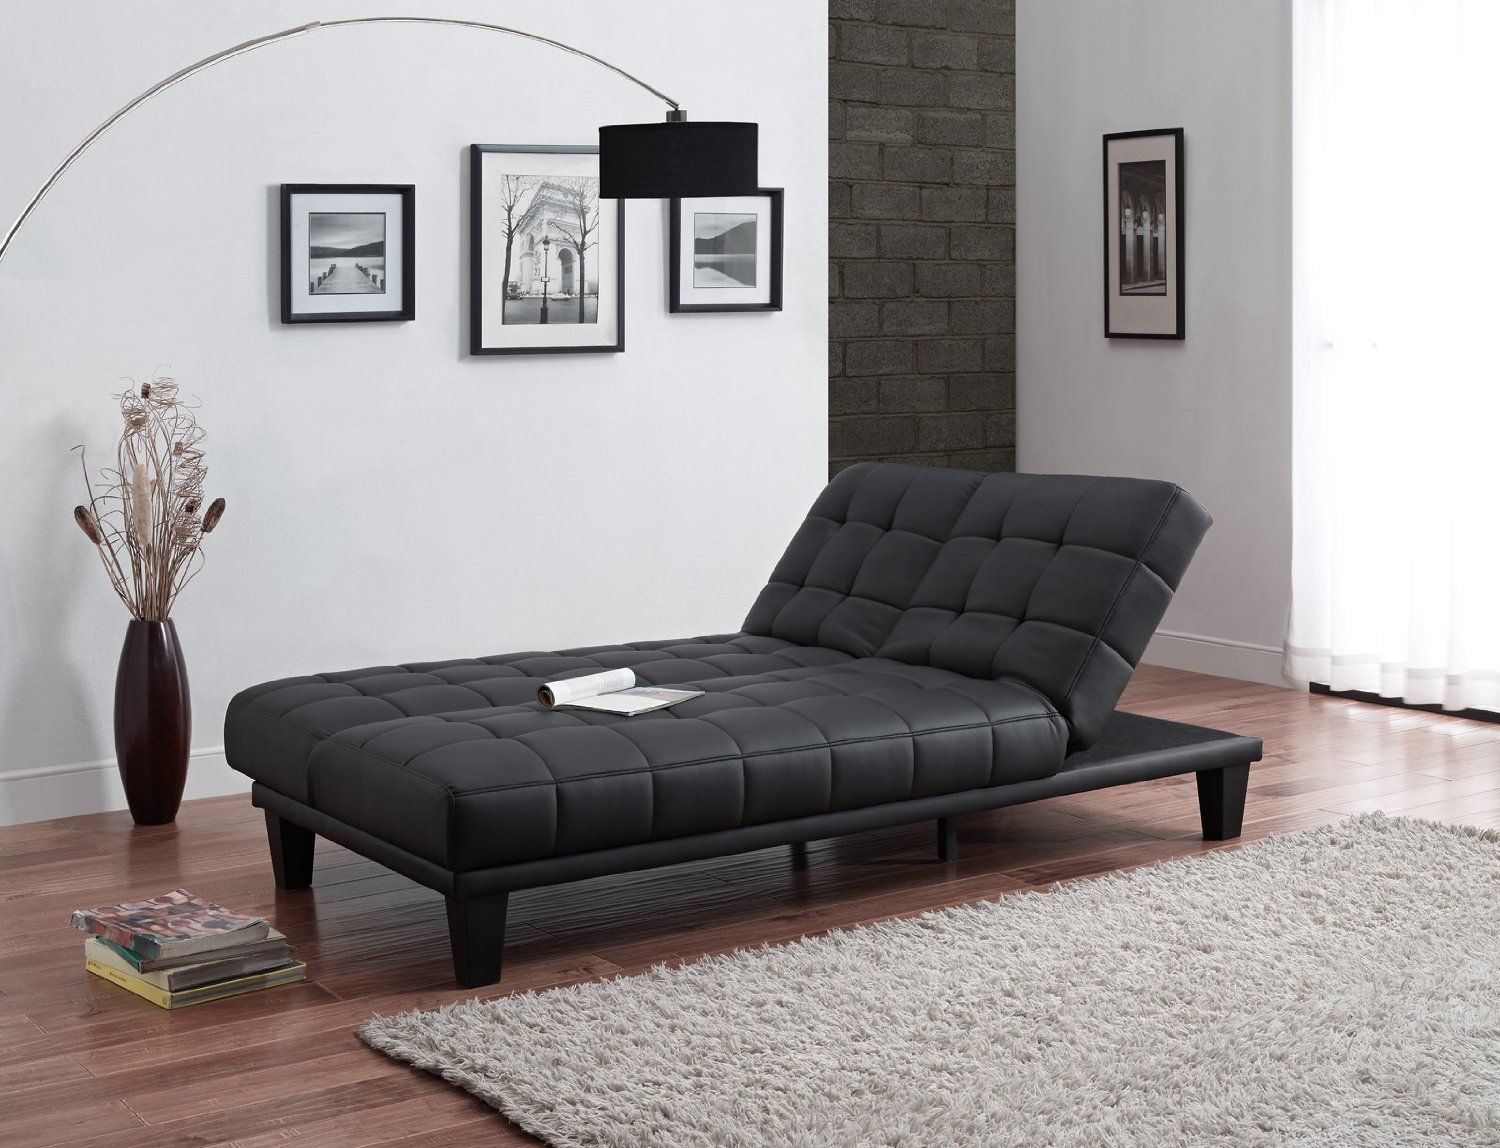 dorel home products  dhp  is one of north america u0027s leading supplier and importer of stylish futons bunk beds and accent furniture  kebo futon chair   http   sectionalsofaforsale      for my      rh   pinterest co uk